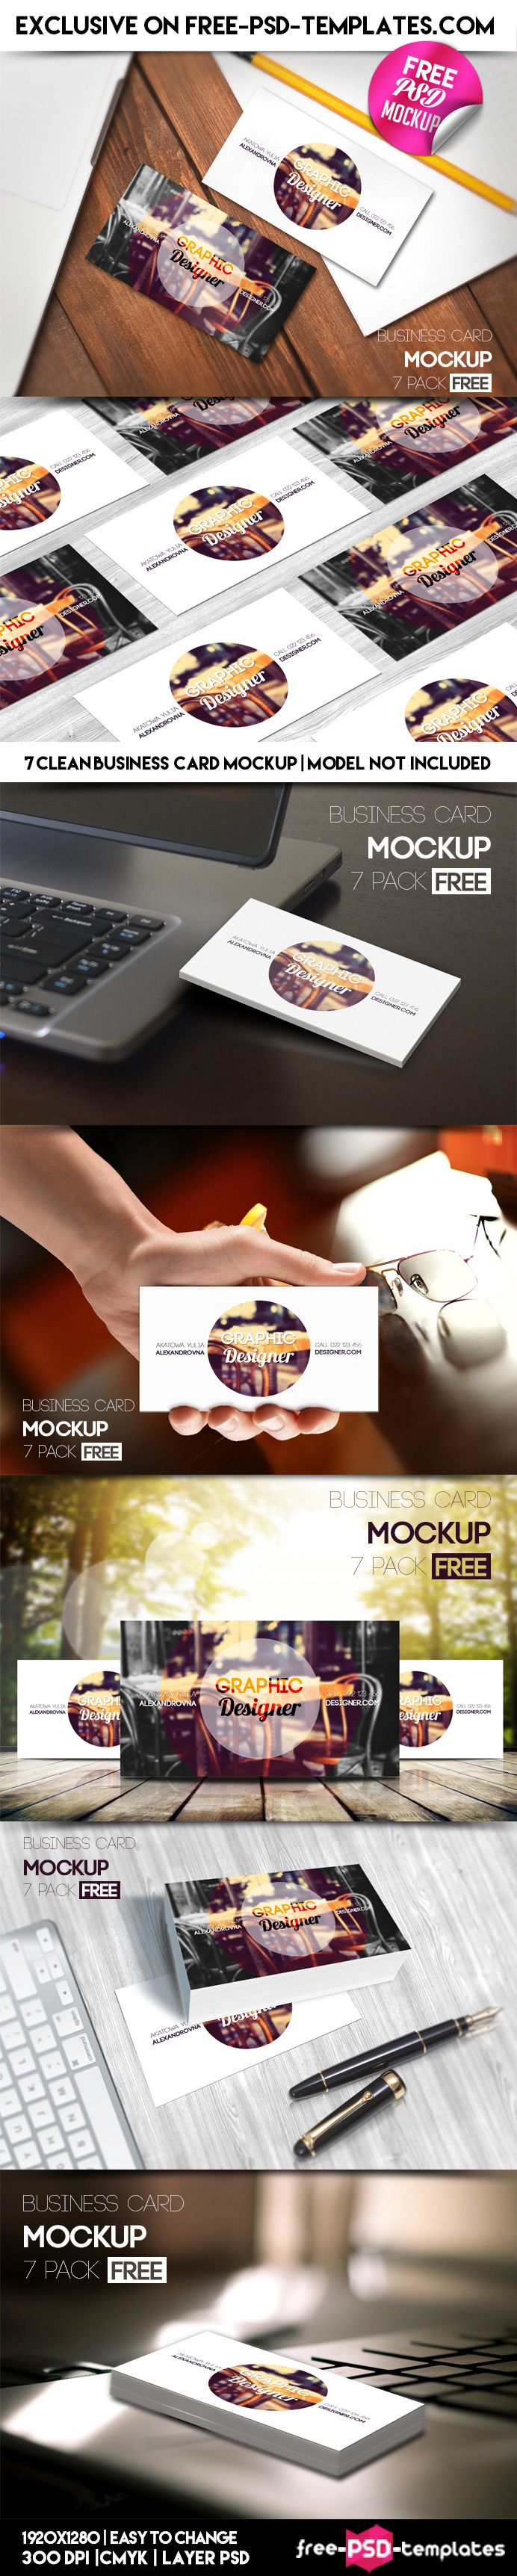 245 best mock ups images on pinterest miniatures mock up and 7 free psd business card mockups on behance reheart Choice Image